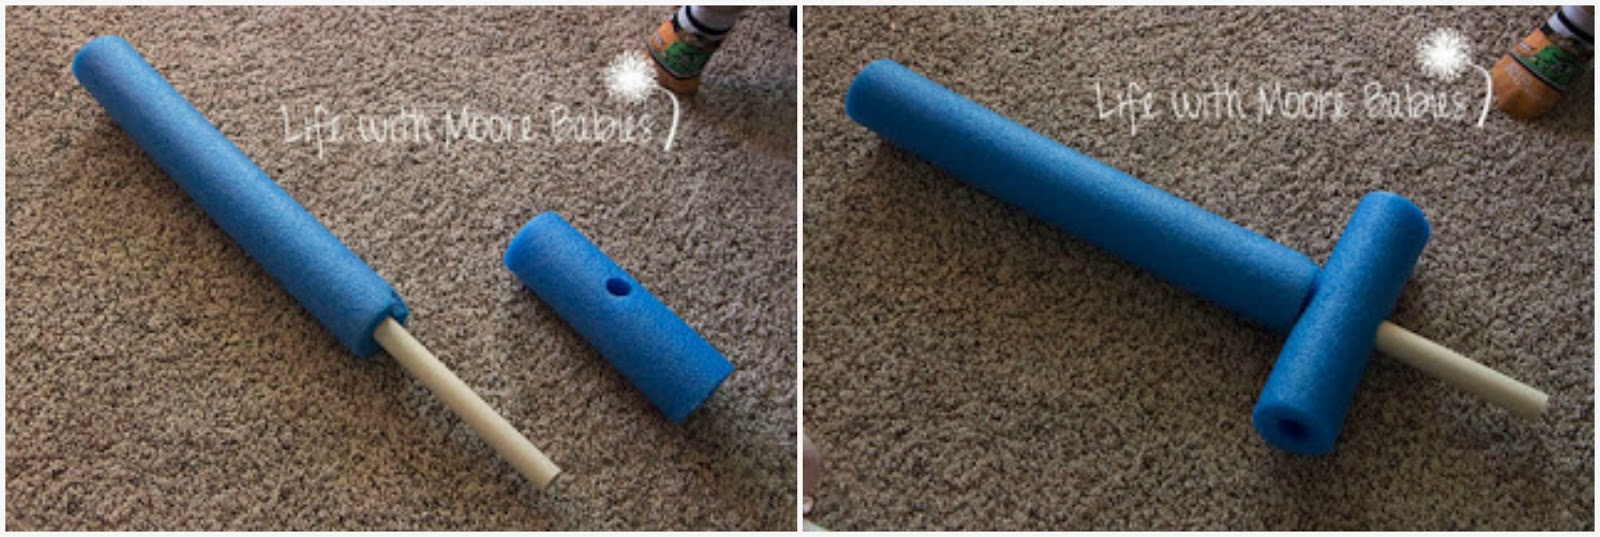 Make Your Own Simple Pool Noodle Swords - Life with Moore Babies